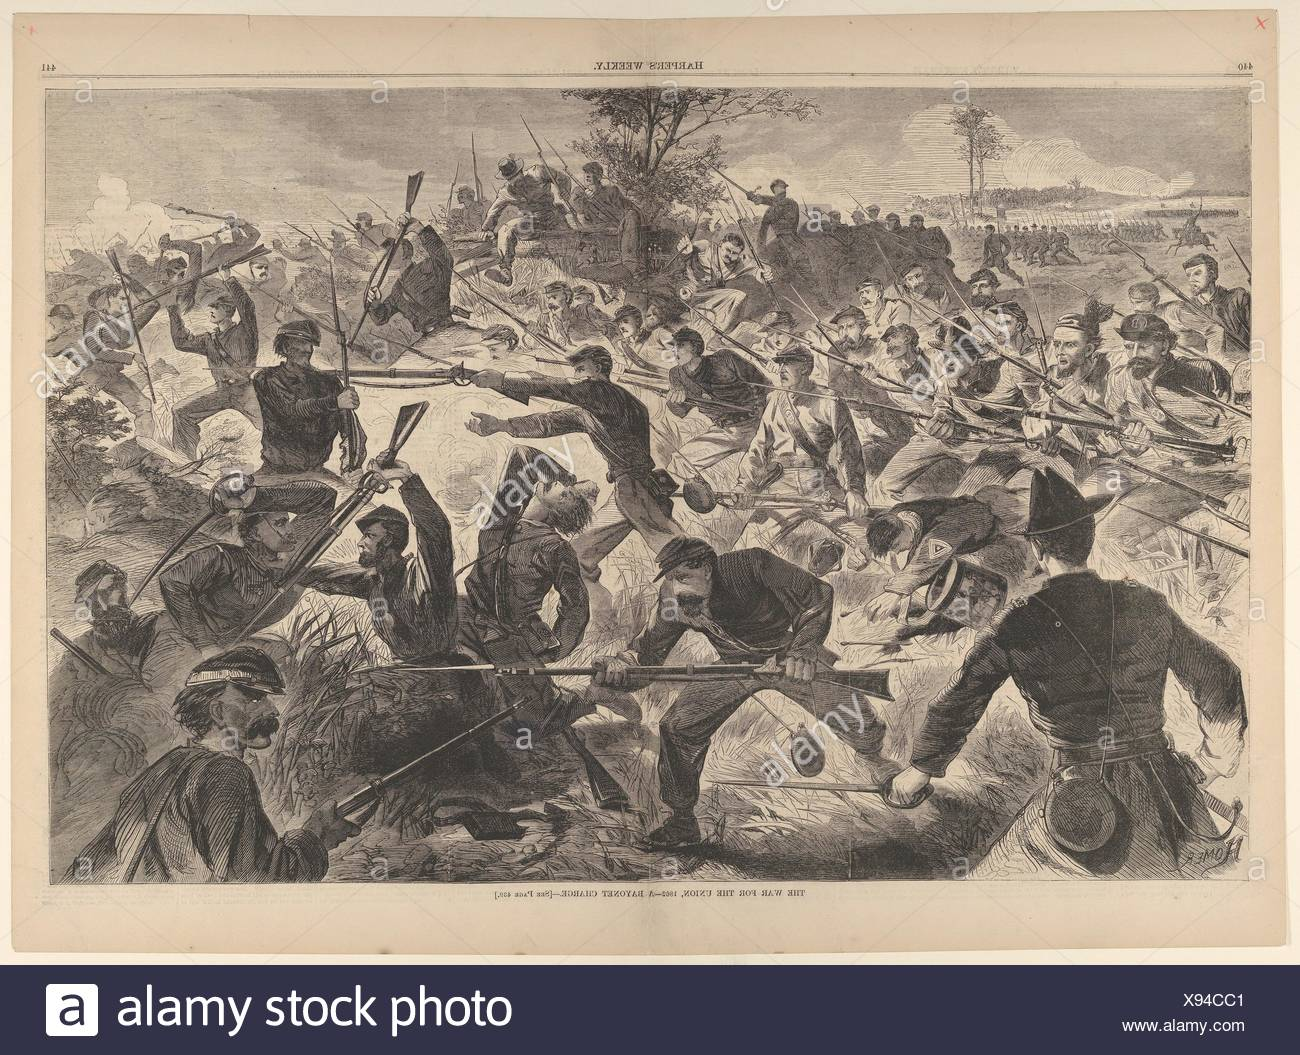 The War for the Union, 1862 - A Bayonet Charge (Harper's Weekly, Vol. VII). Artist: Winslow Homer (American, Boston, Massachusetts 1836-1910 Prouts - Stock Image